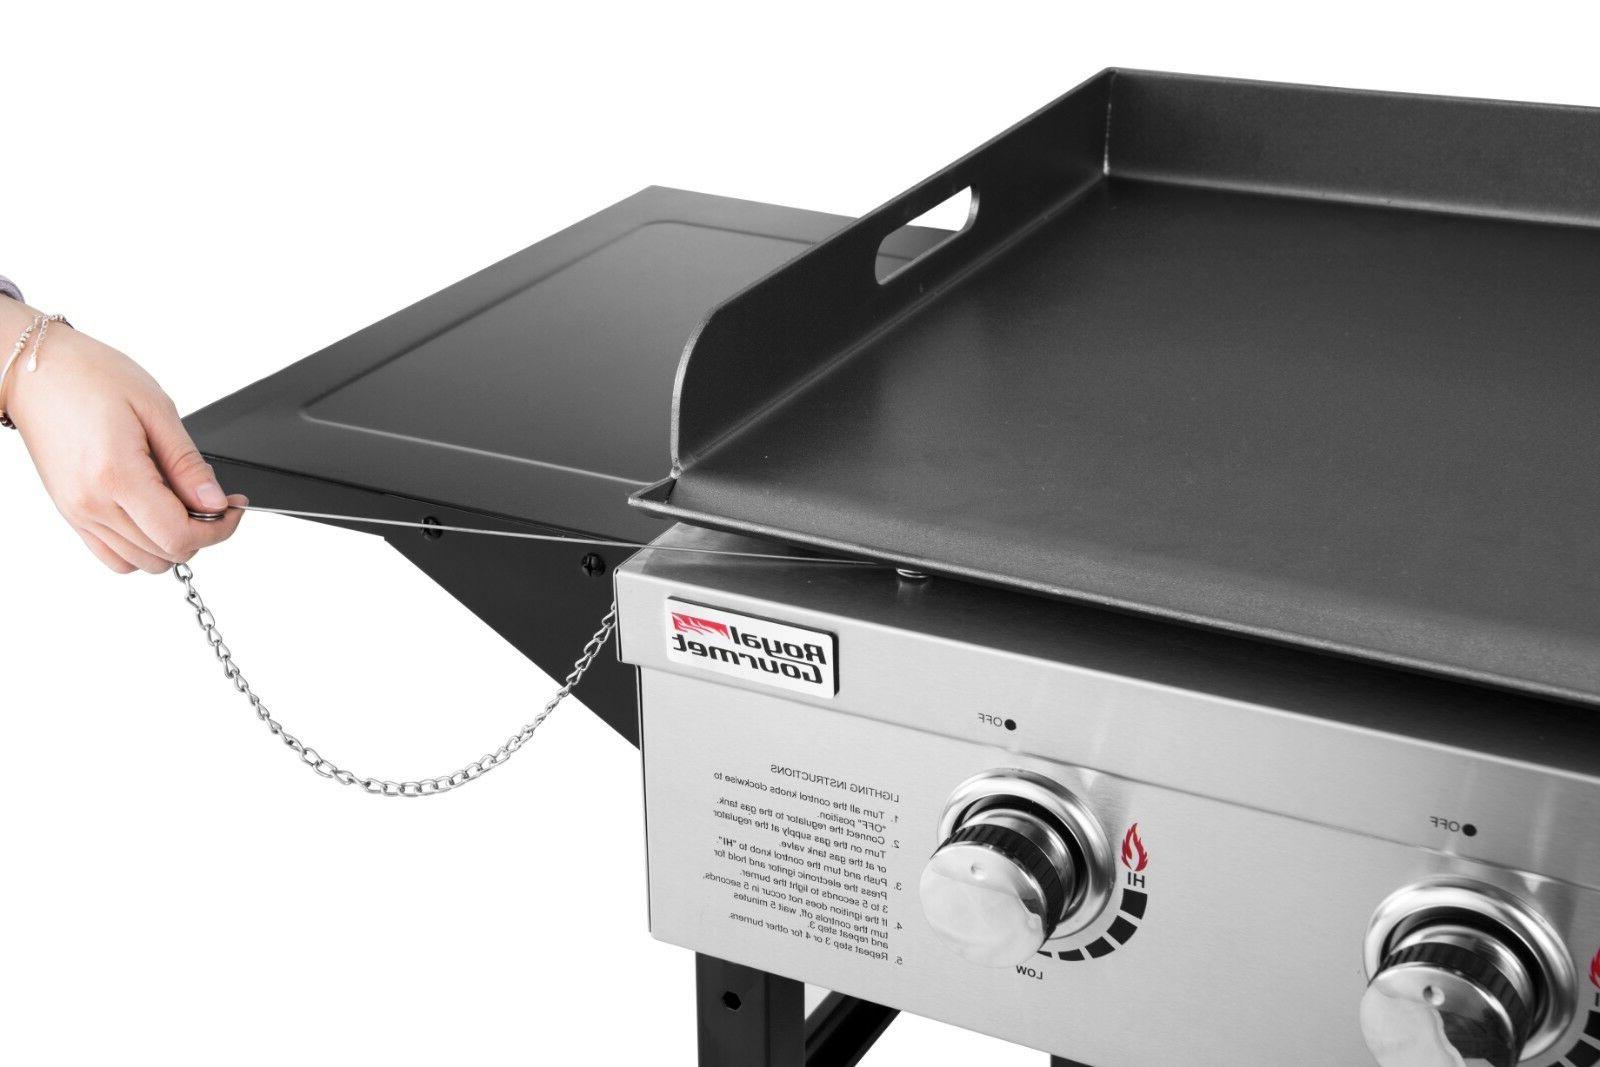 Royal Gourmet Top Gas Grill, 36-Inch Propane Griddle,